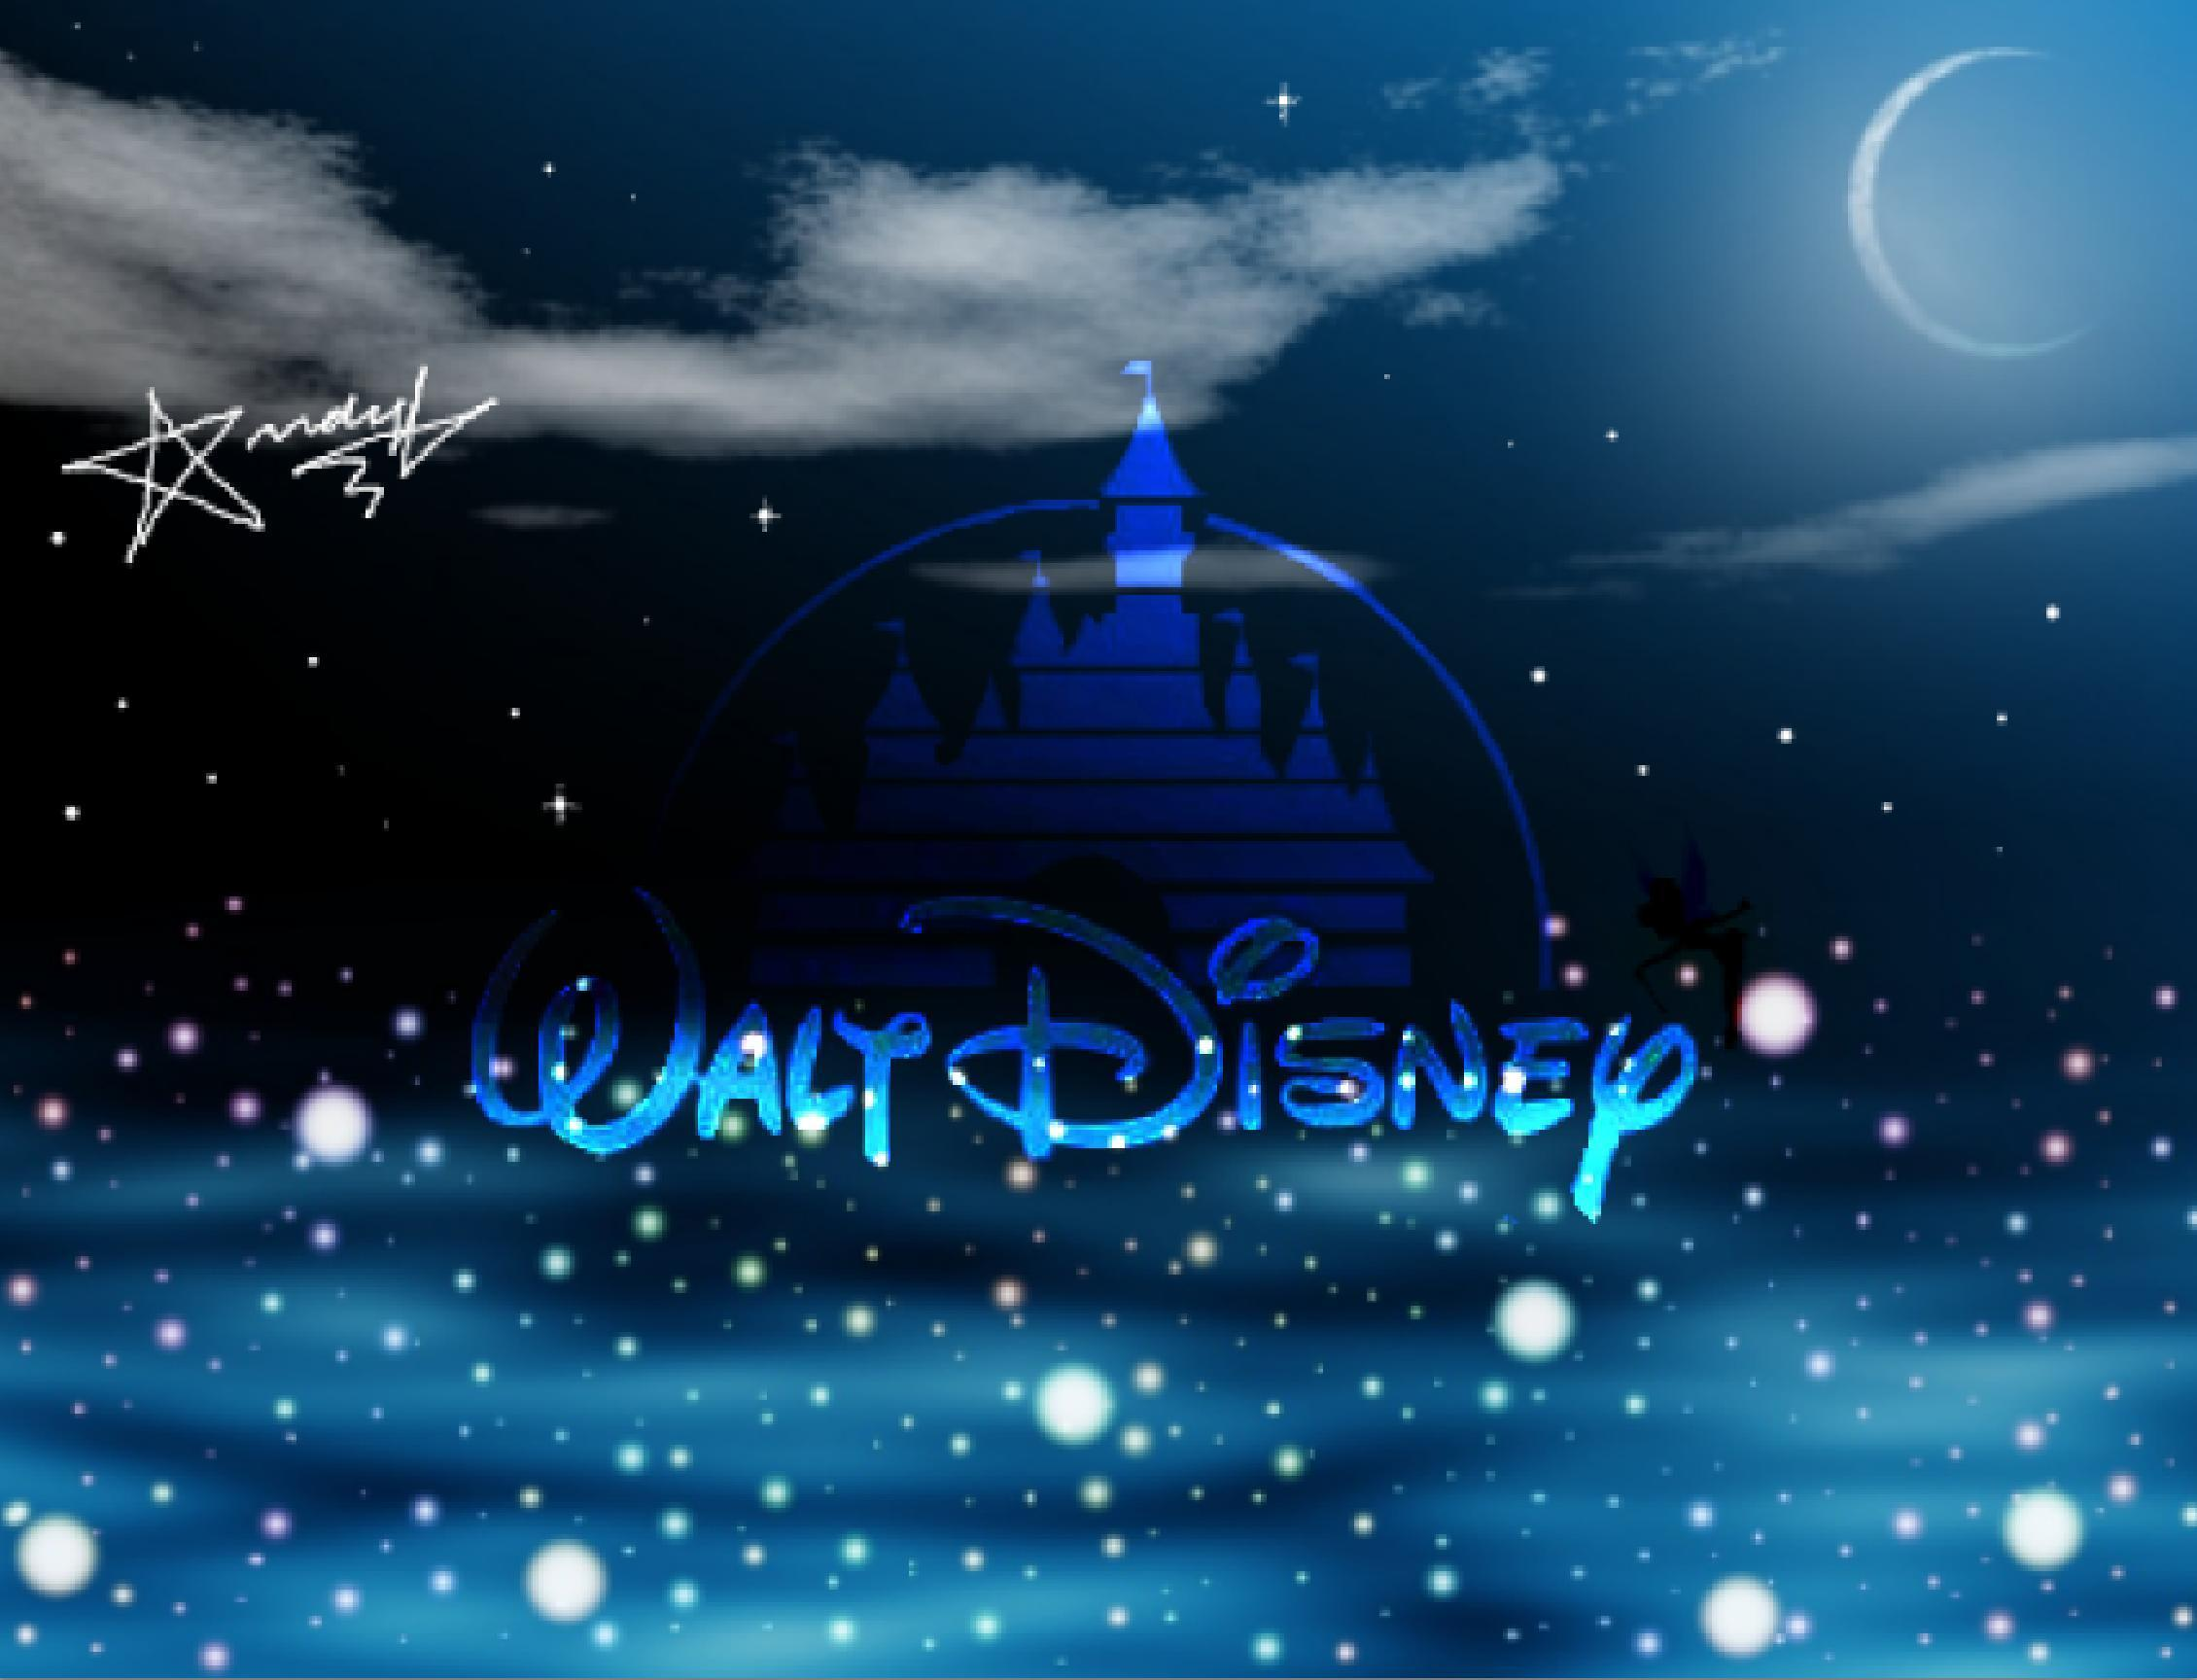 disney logo wallpaper 5 2260x1728